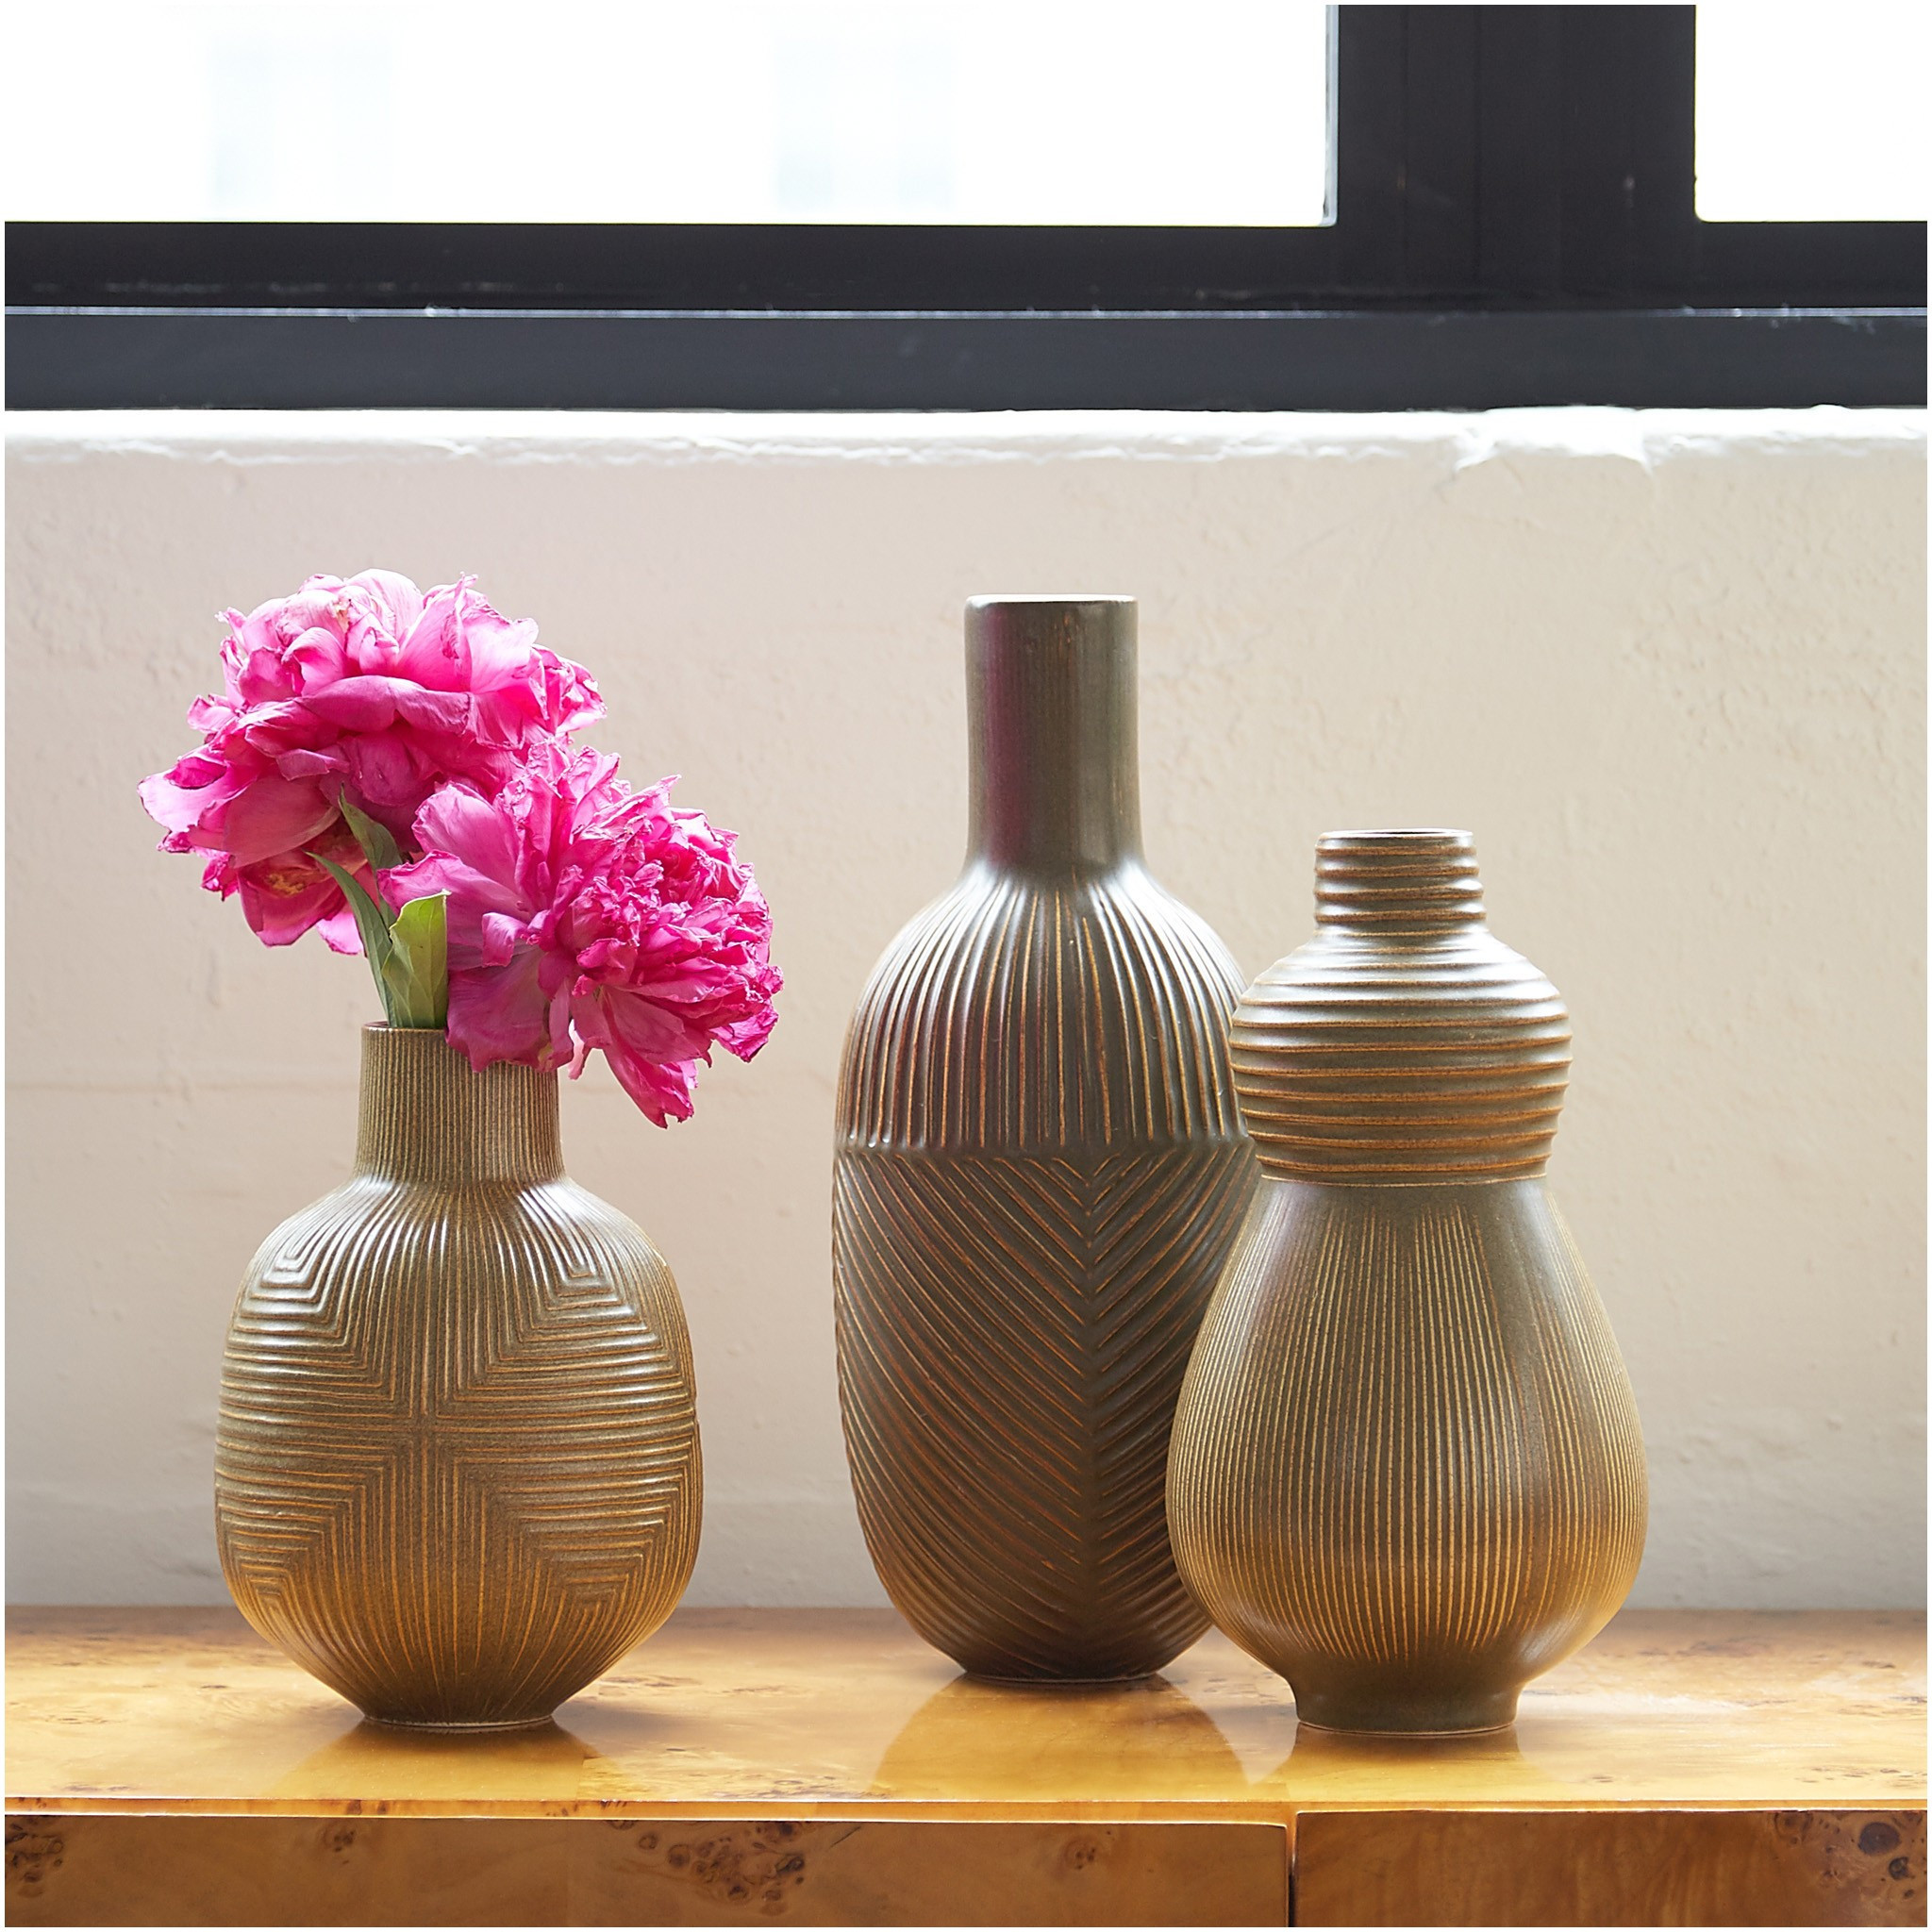 ceramic vase ideas of 21 beau decorative vases anciendemutu org with regard to modern decor pottery relief vases 2015 styled b jonathan adlerh i 18d